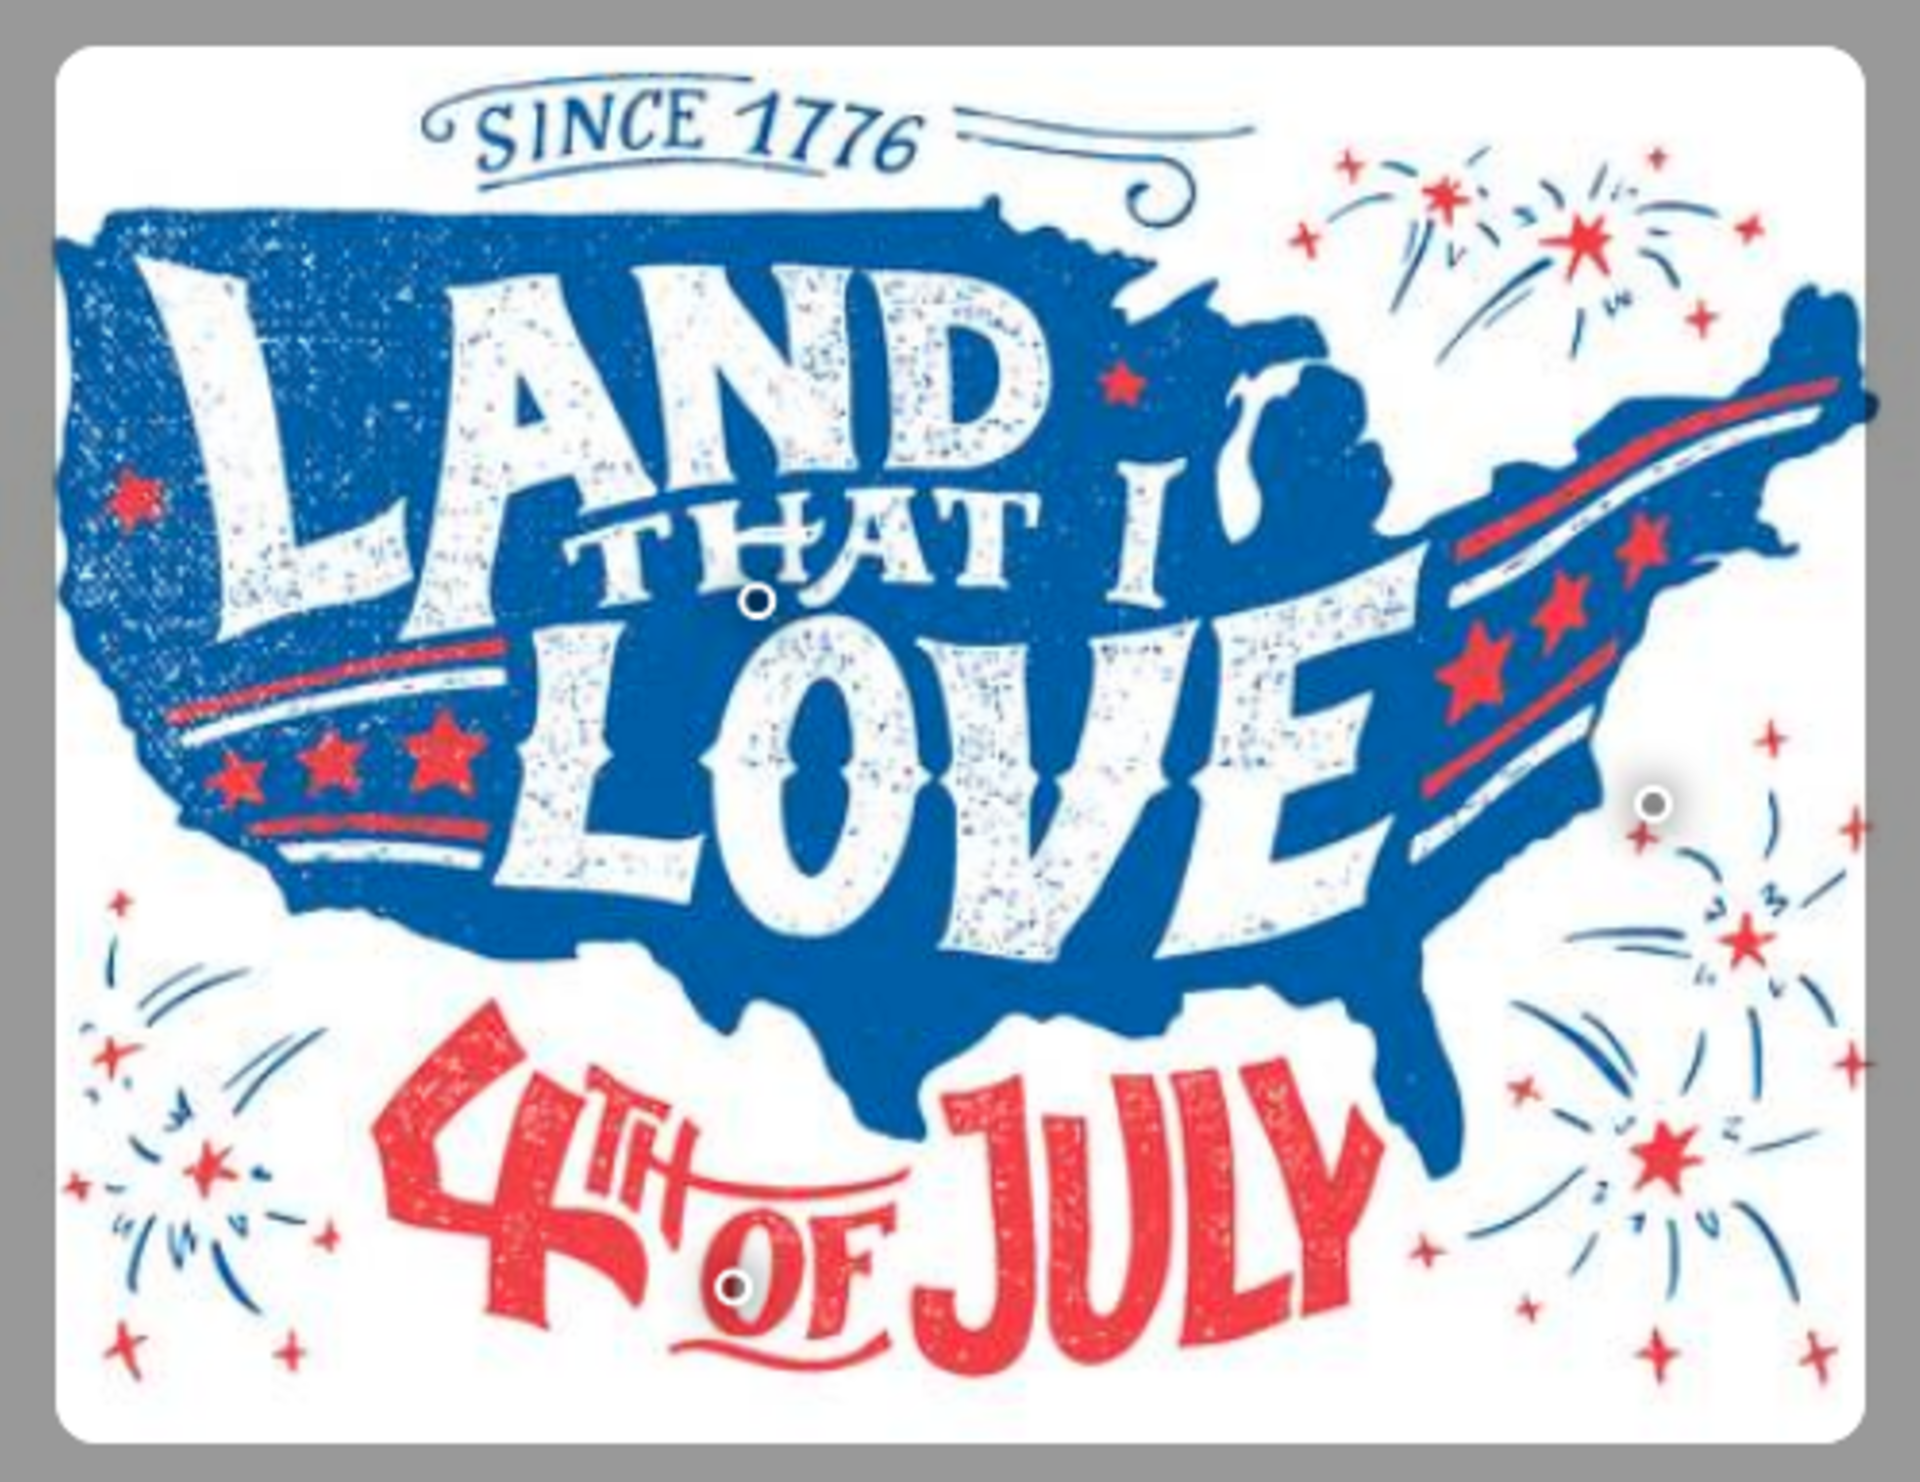 Celebrate like its 1776 this Independence Day!